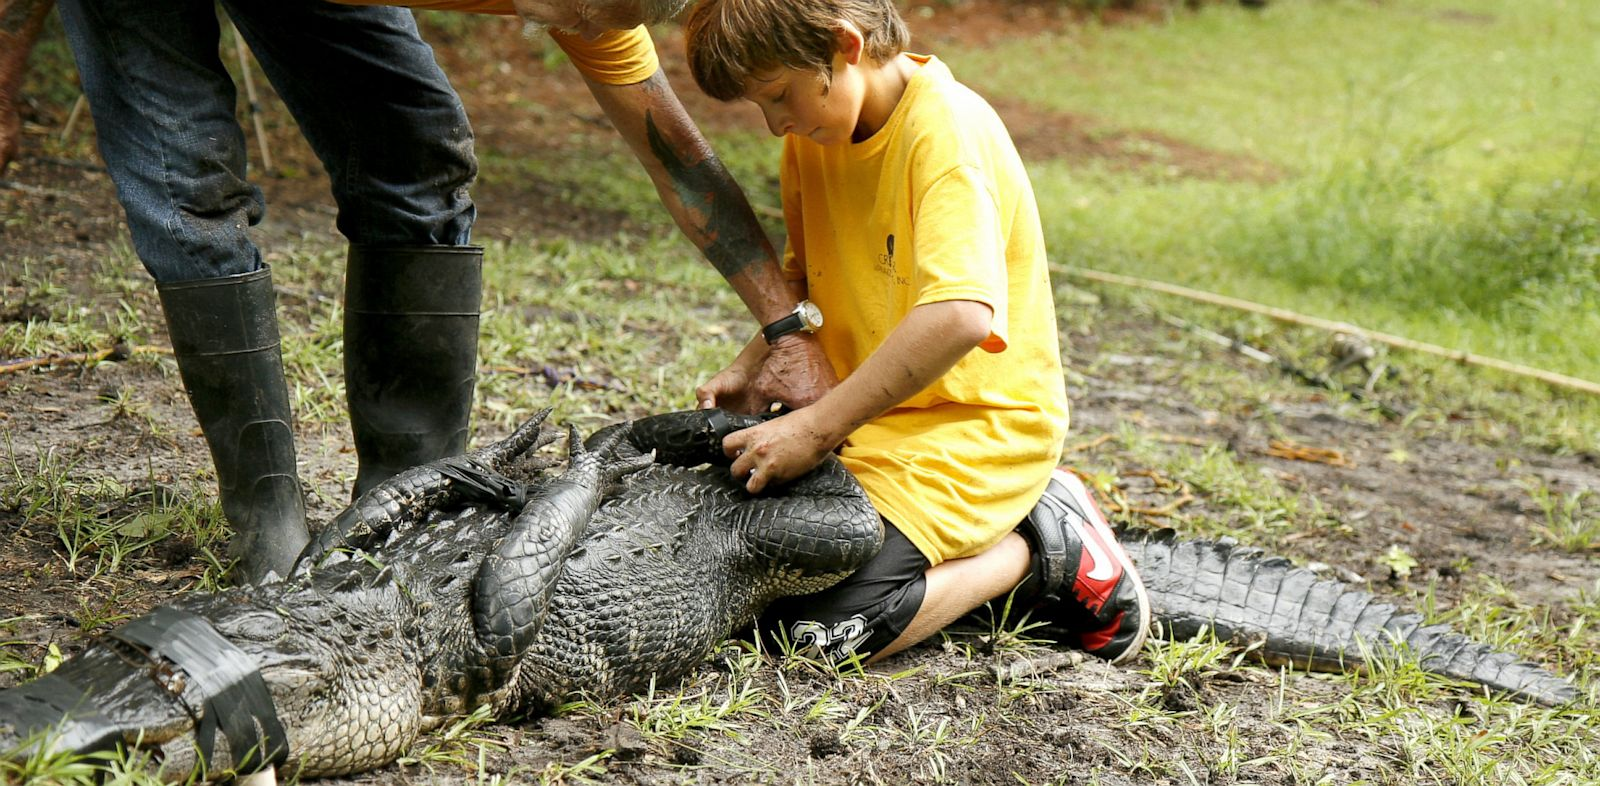 PHOTO: Joey and Joe Maffo with alligator